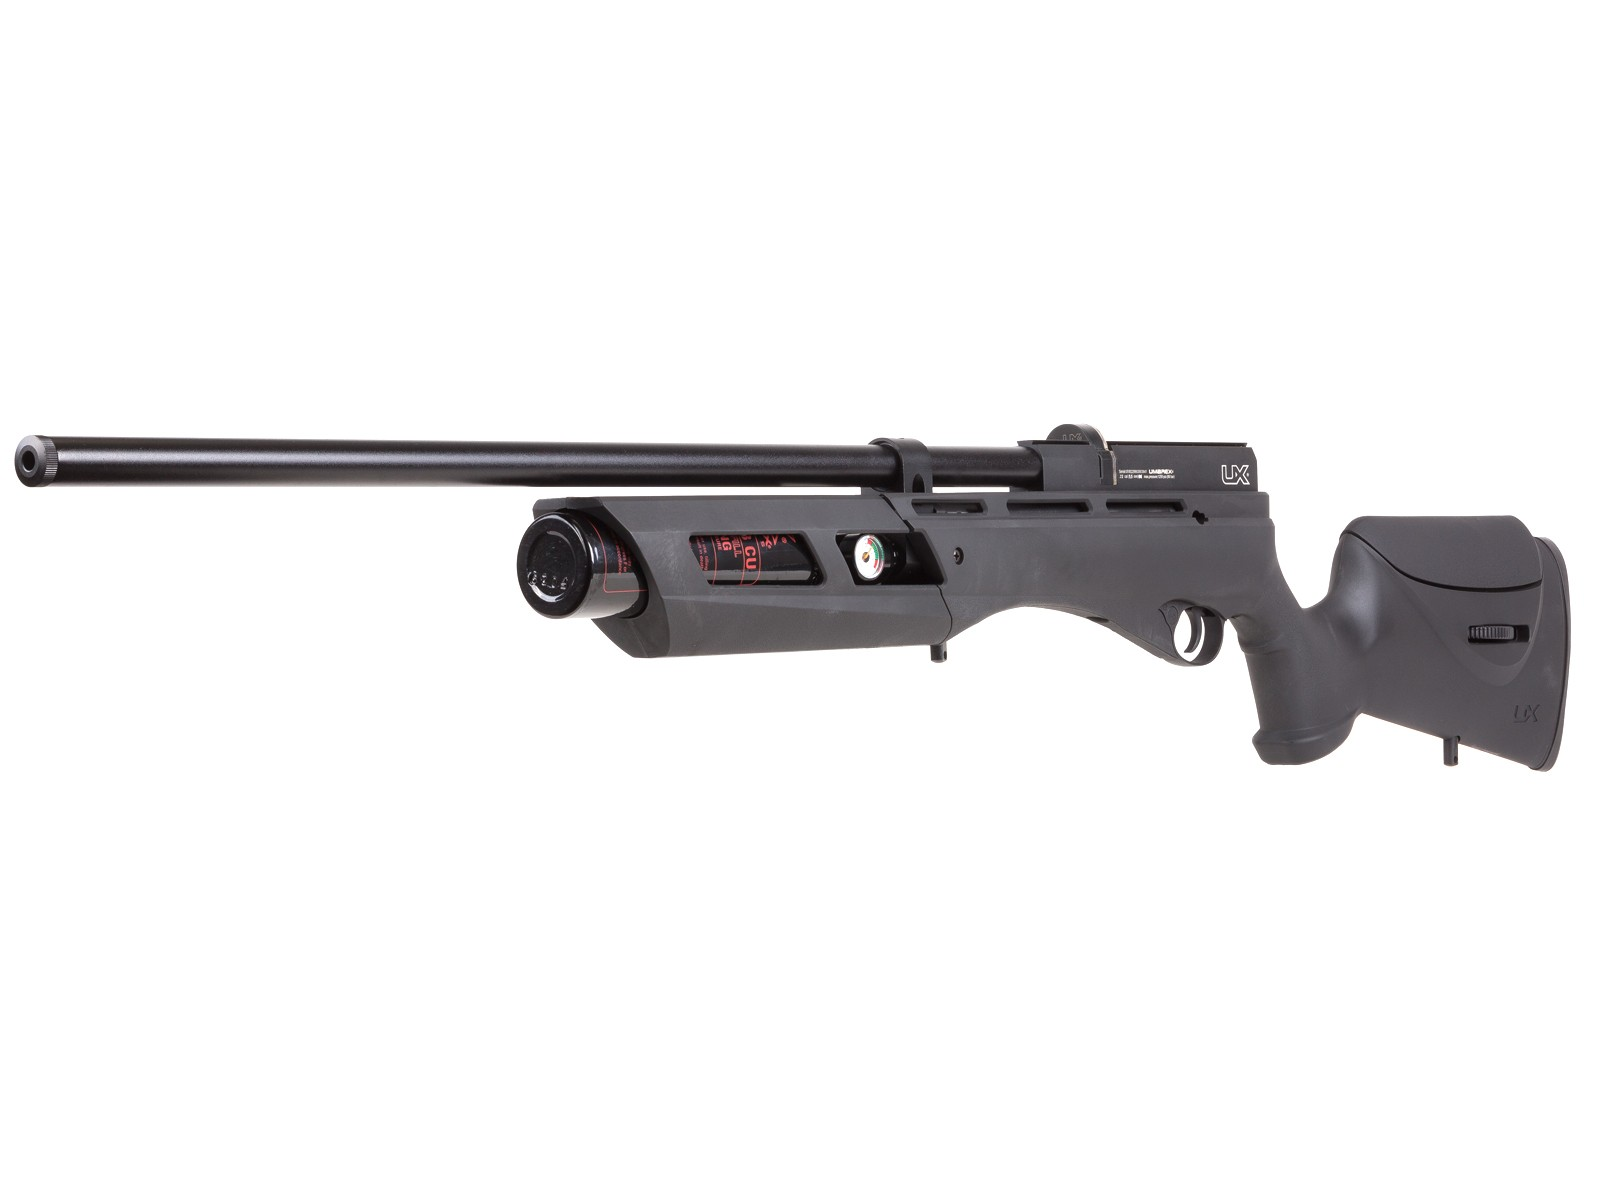 Umarex Gauntlet PCP Air Rifle, Synthetic Stock